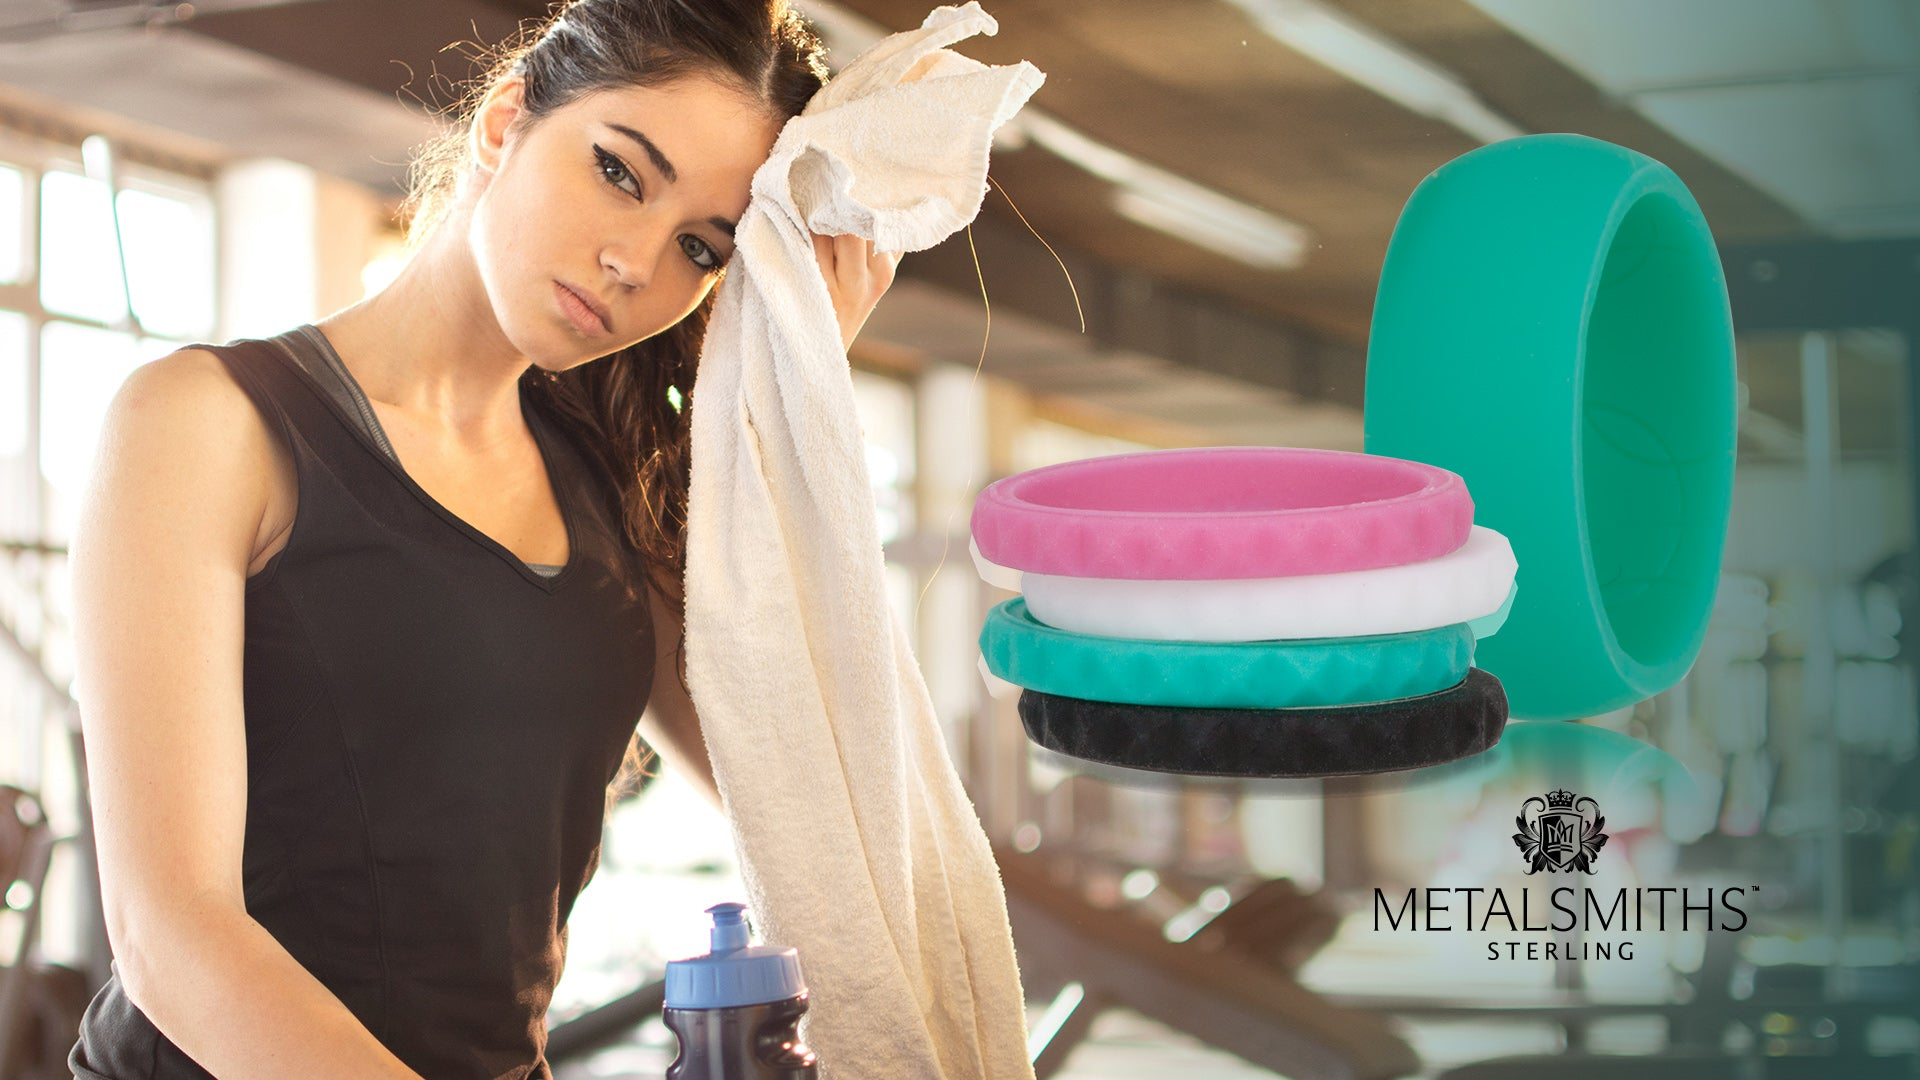 Metalsmiths Sterling Silicone Active Bands